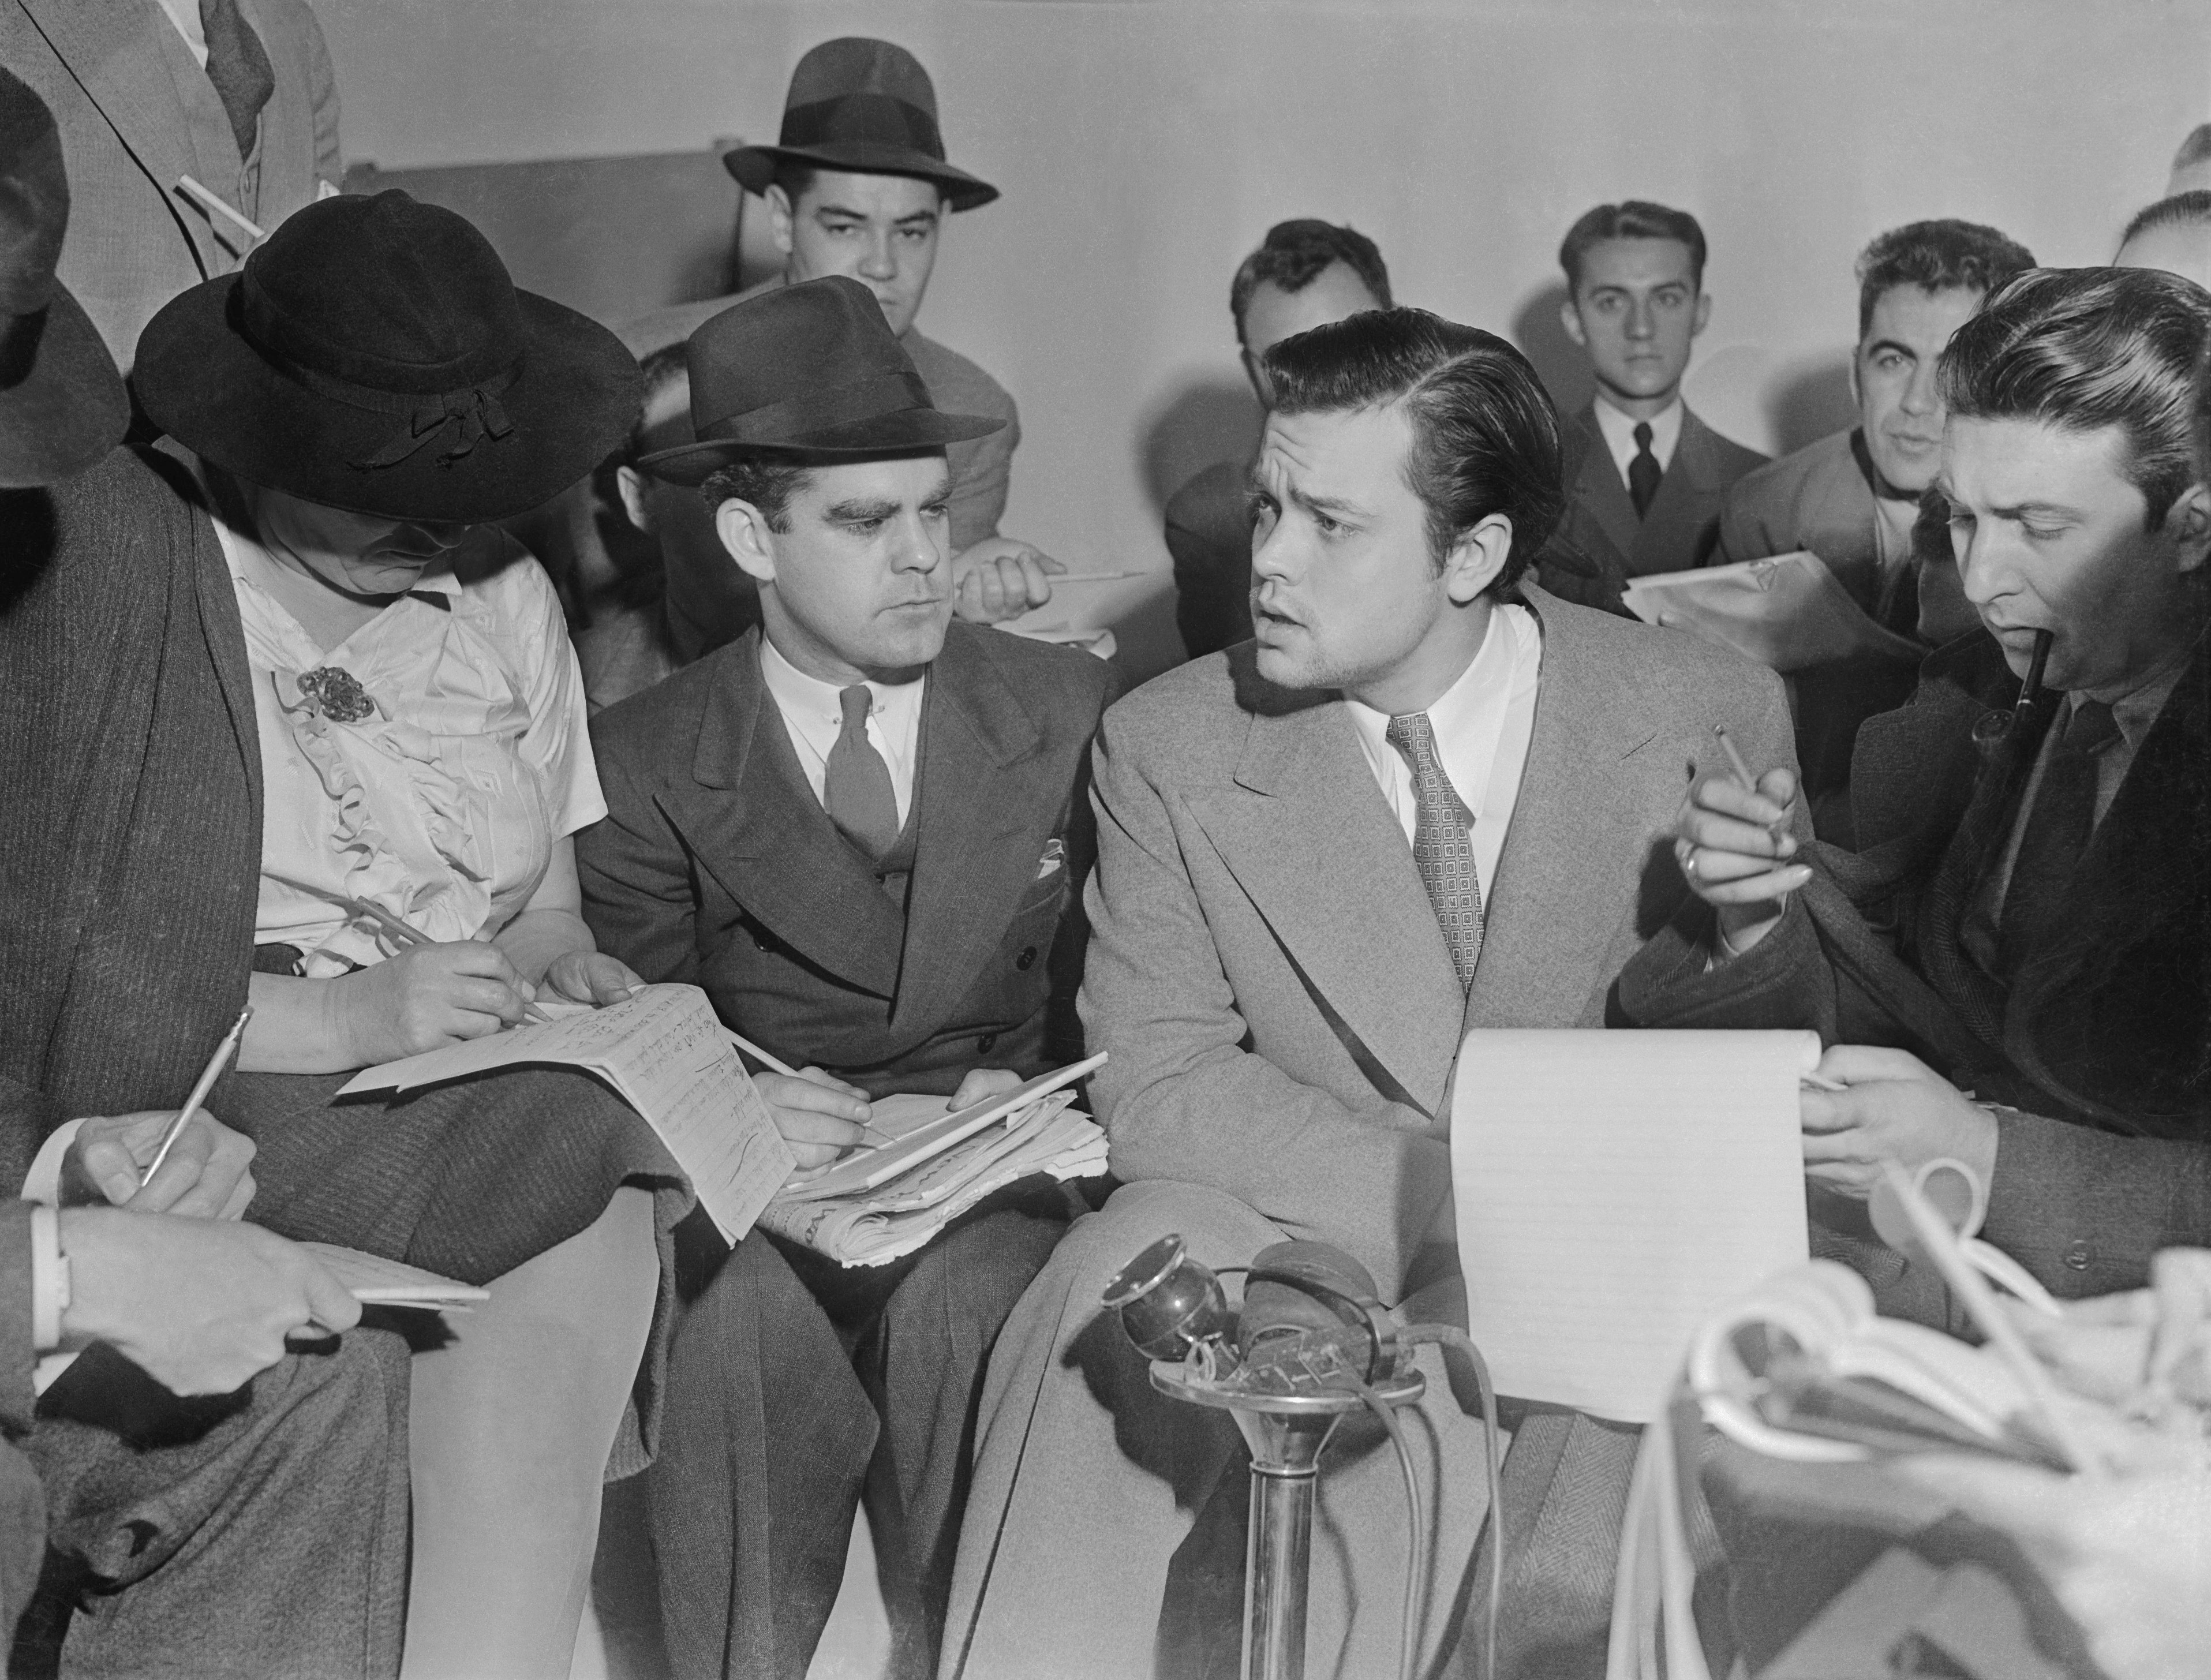 A profile of Orson Welles' face surrounded by reporters in a black-and-white photo